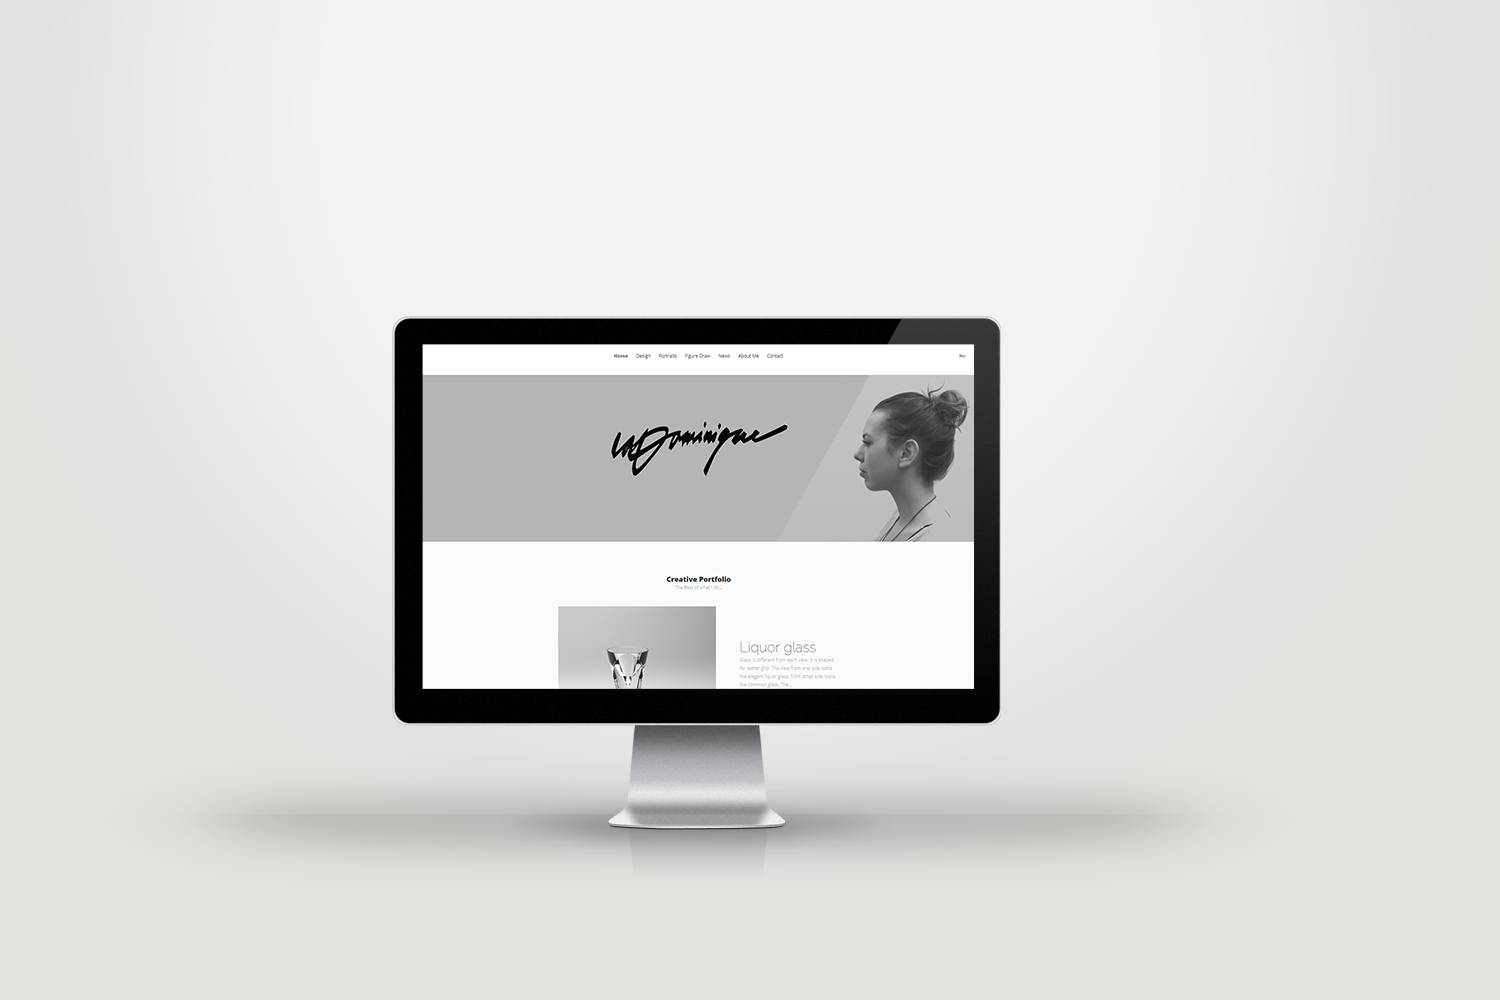 La Dominique – Creative Designer